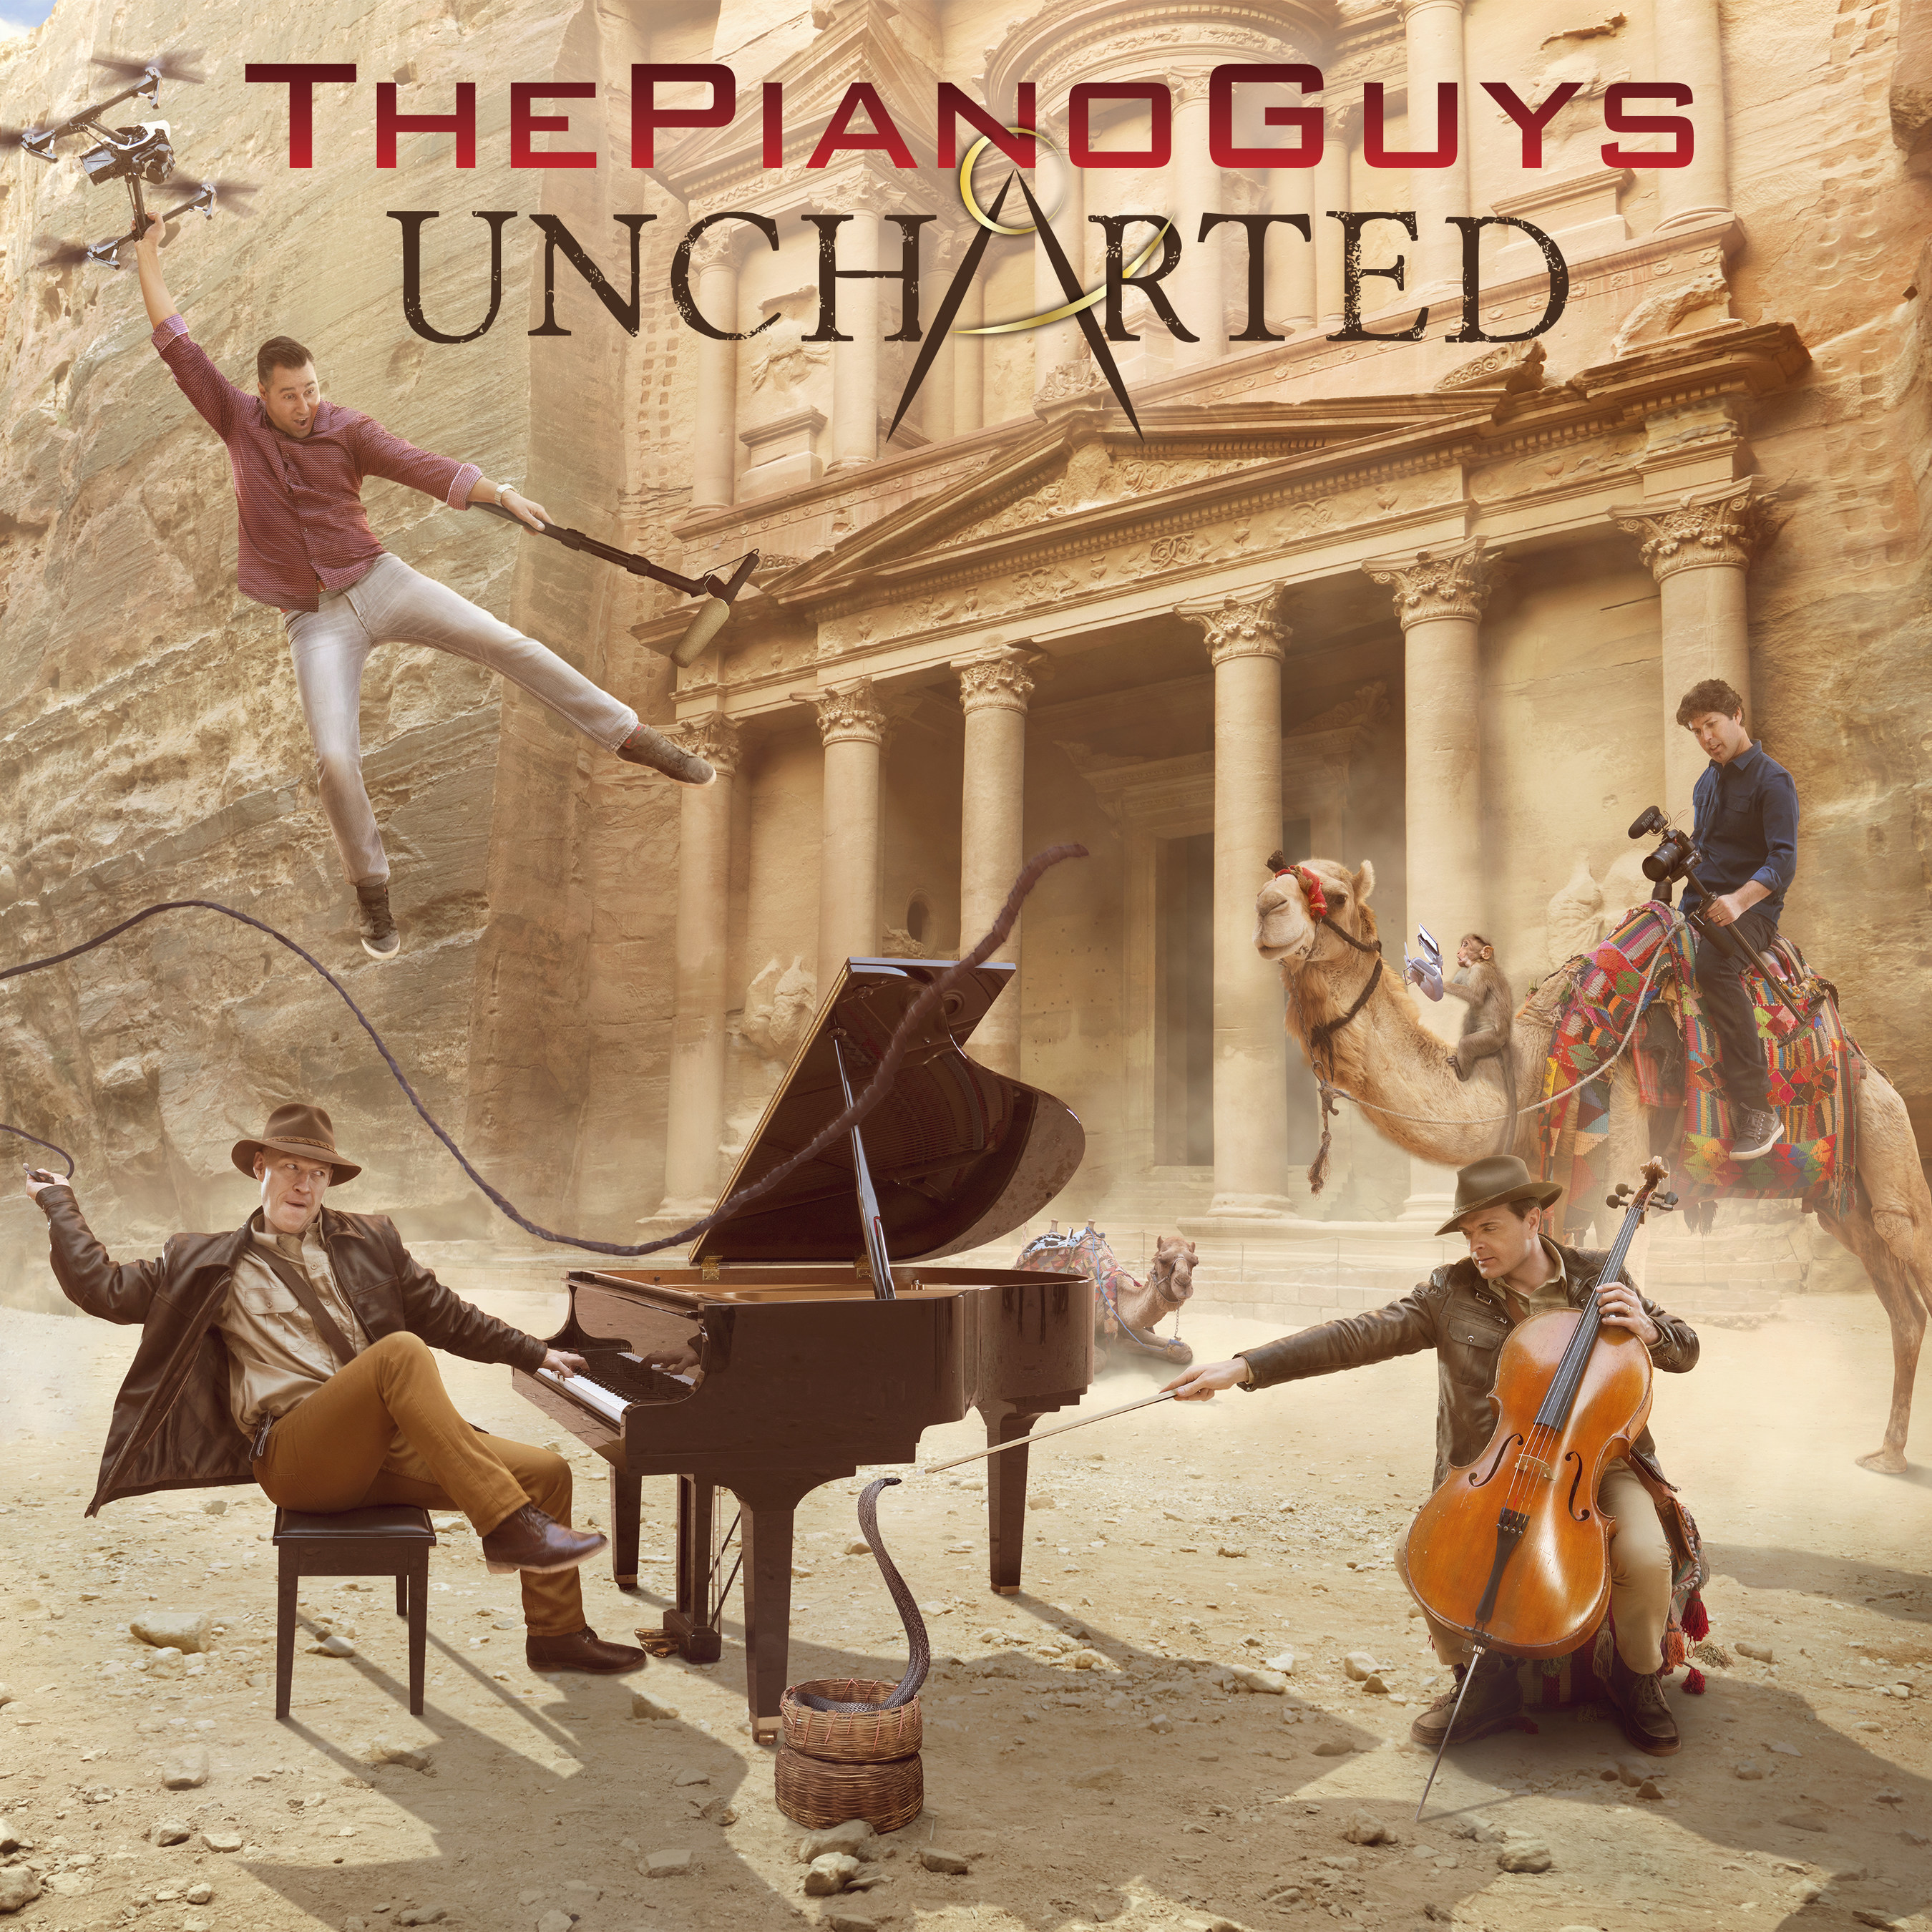 New Album UNCHARTED from The Piano Guys Out October 28